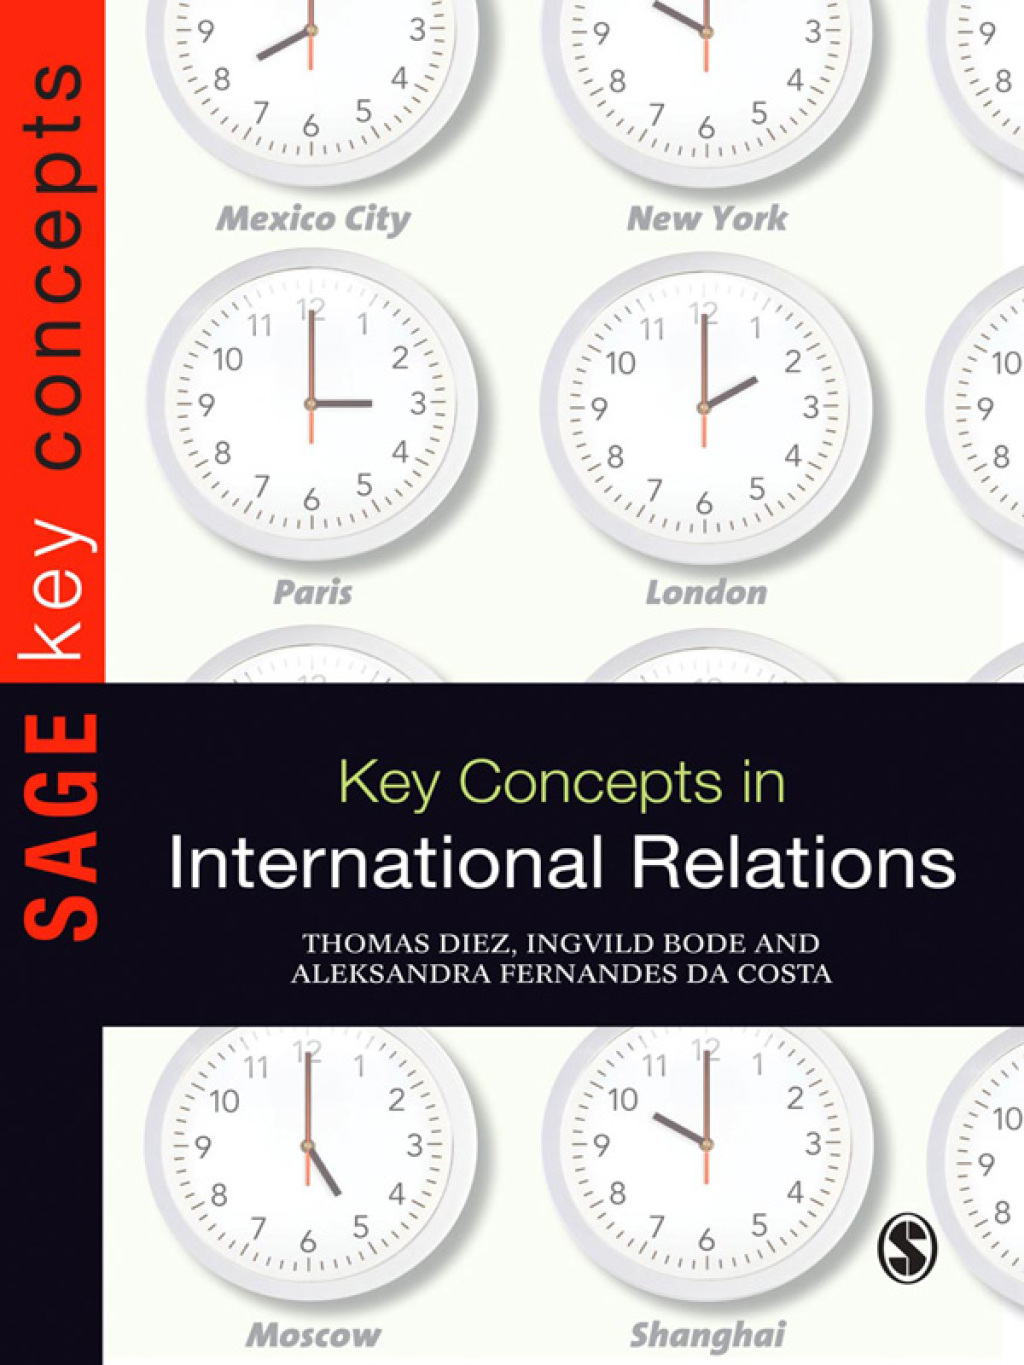 Key Concepts in International Relations (ebook) eBooks